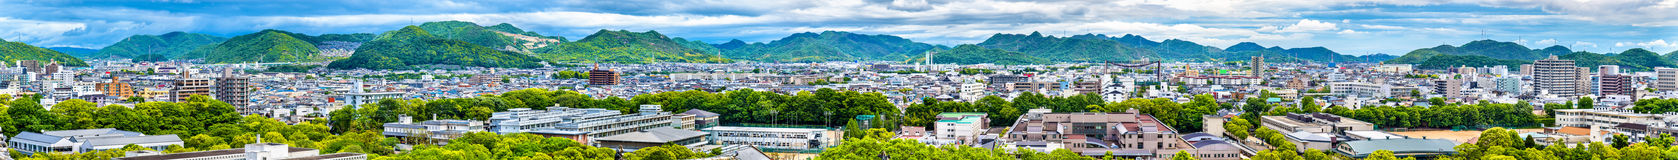 View of Himeji city from the castle - Japan Stock Photo